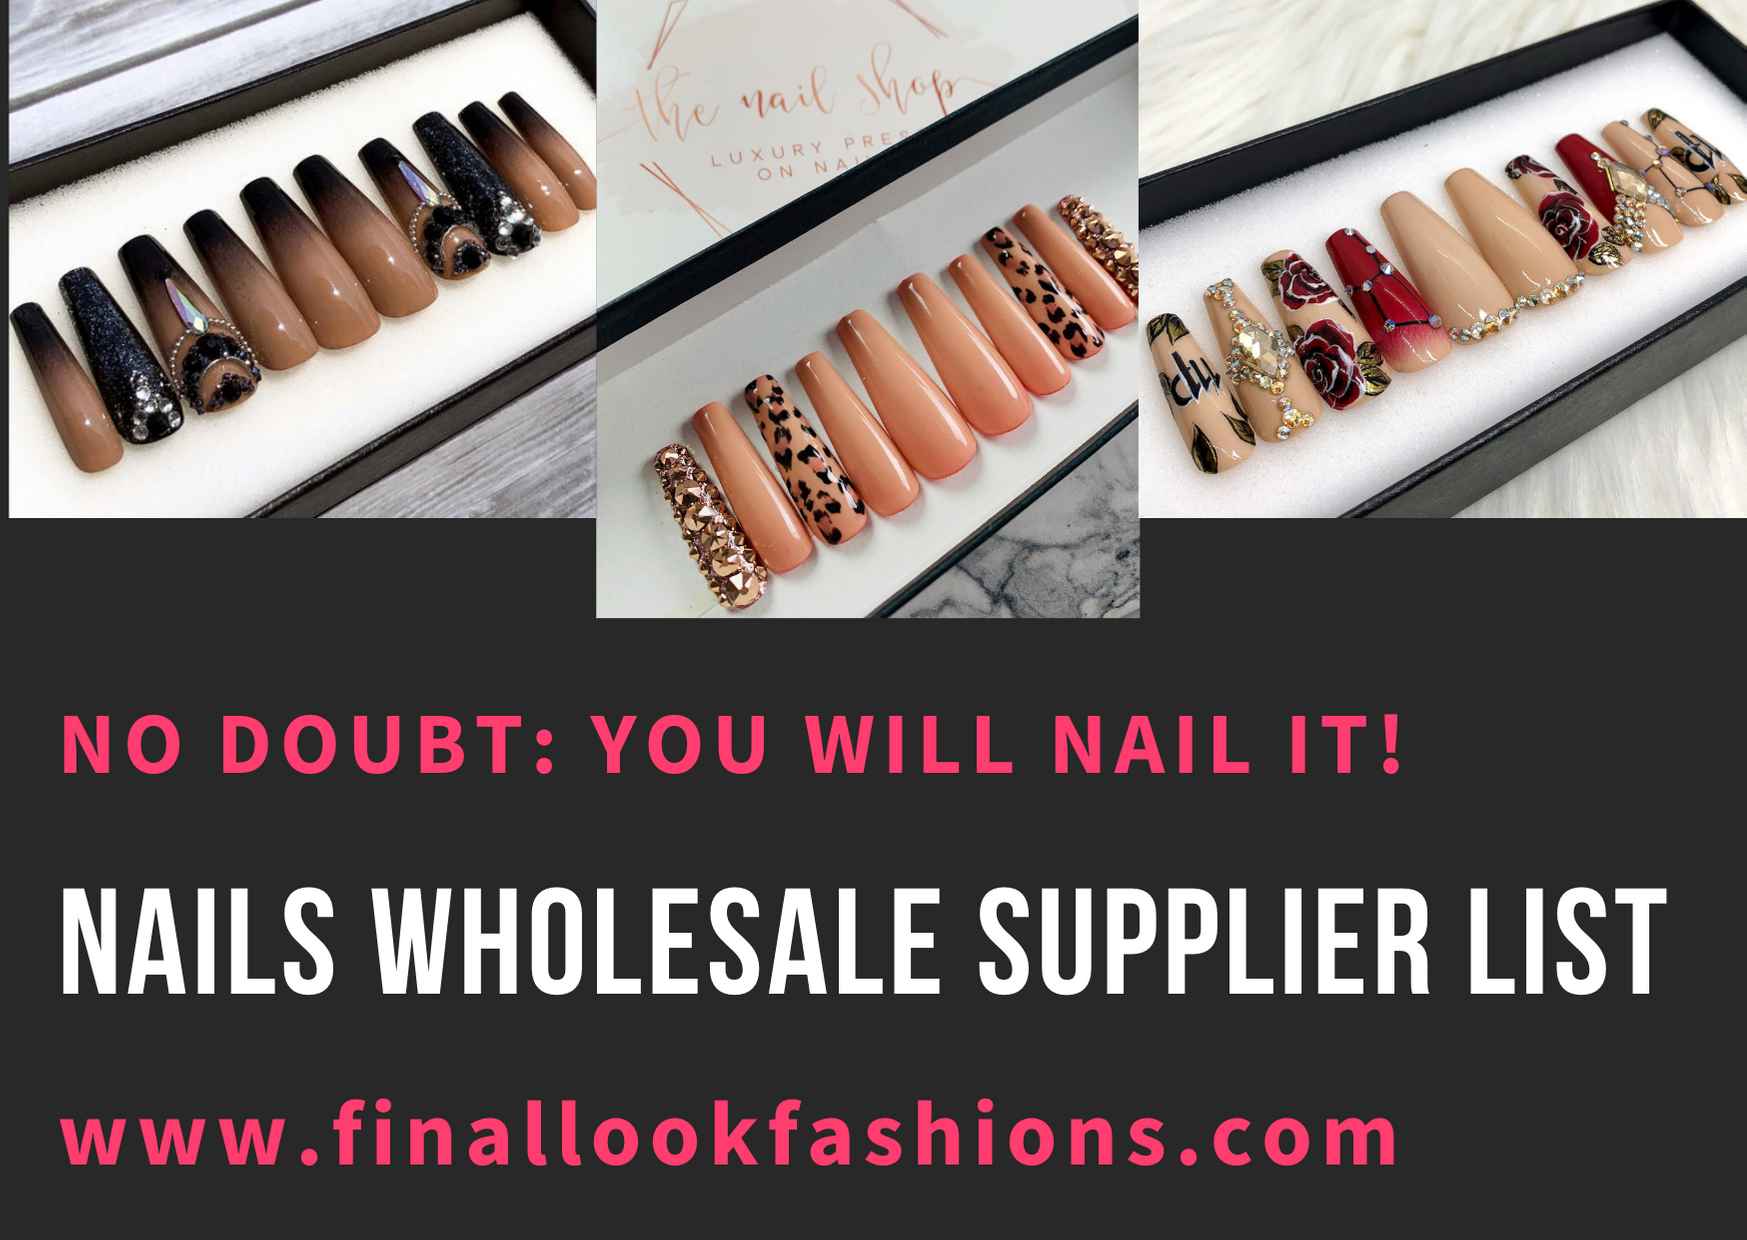 Nails Wholesale Supplier List